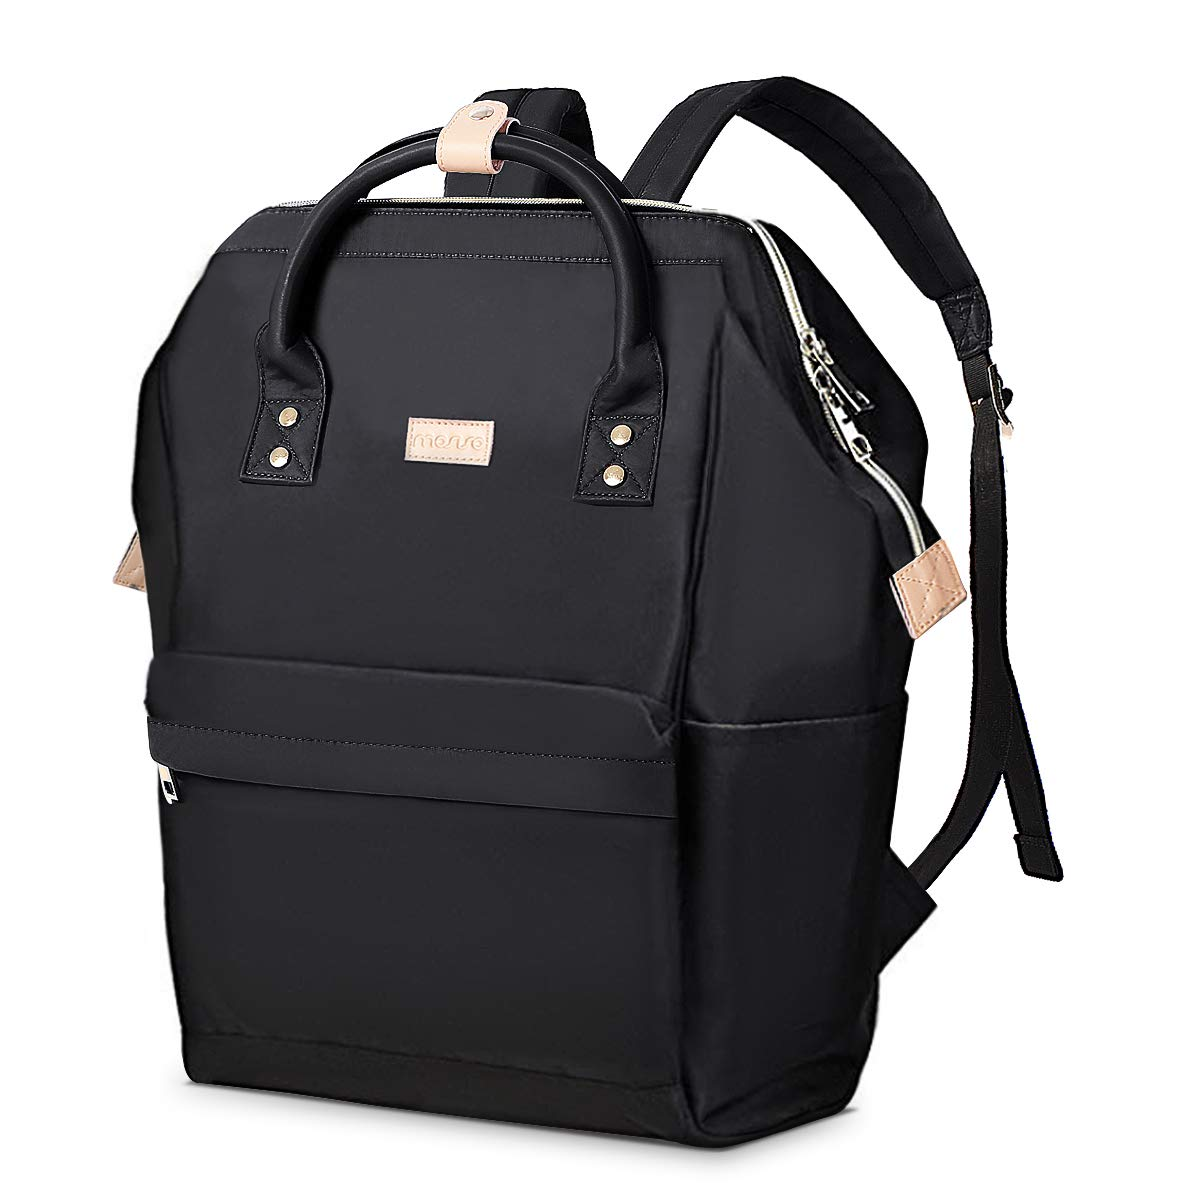 MOSISO Business Travel Laptop Backpack (Up to 15.6 Inch), Water Repellent Polyester College School Bookbag Casual Daypack Organizer Bag for Women Men Boy Girl, Compatible MacBook & Notebook, Black